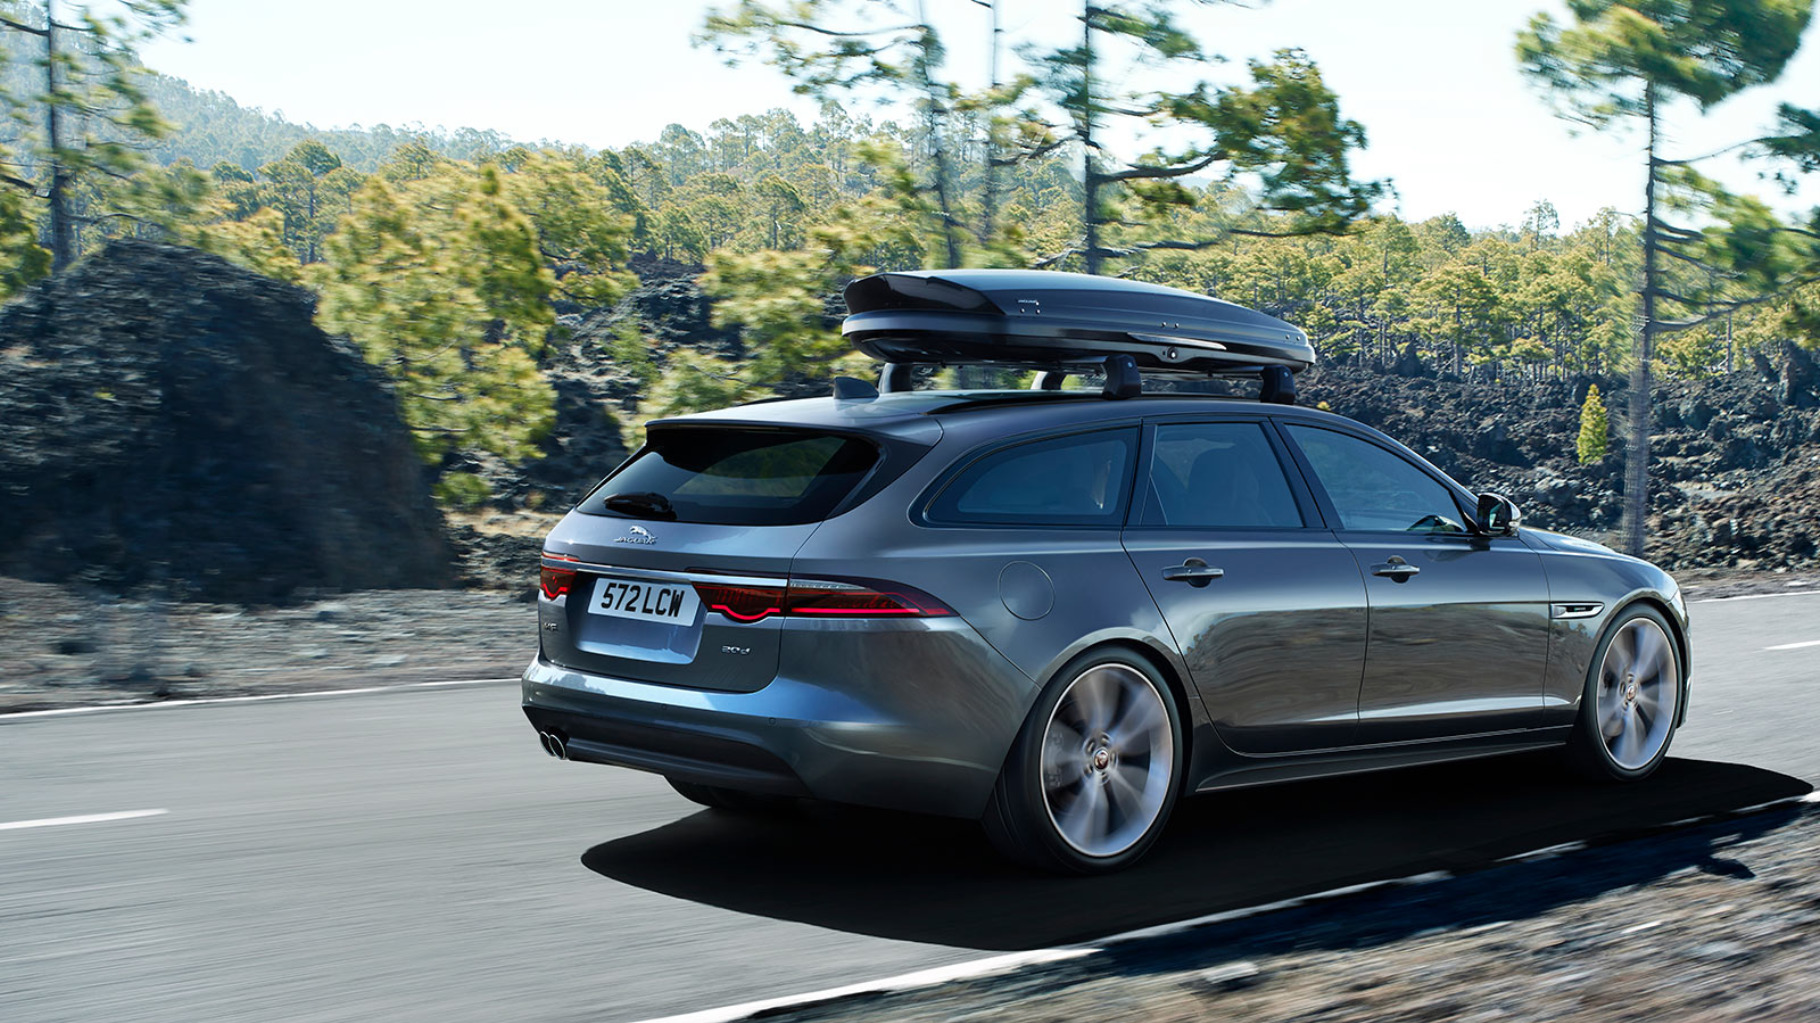 A Jaguar XF Sportbrake driving along a road with a fitted roofbox.